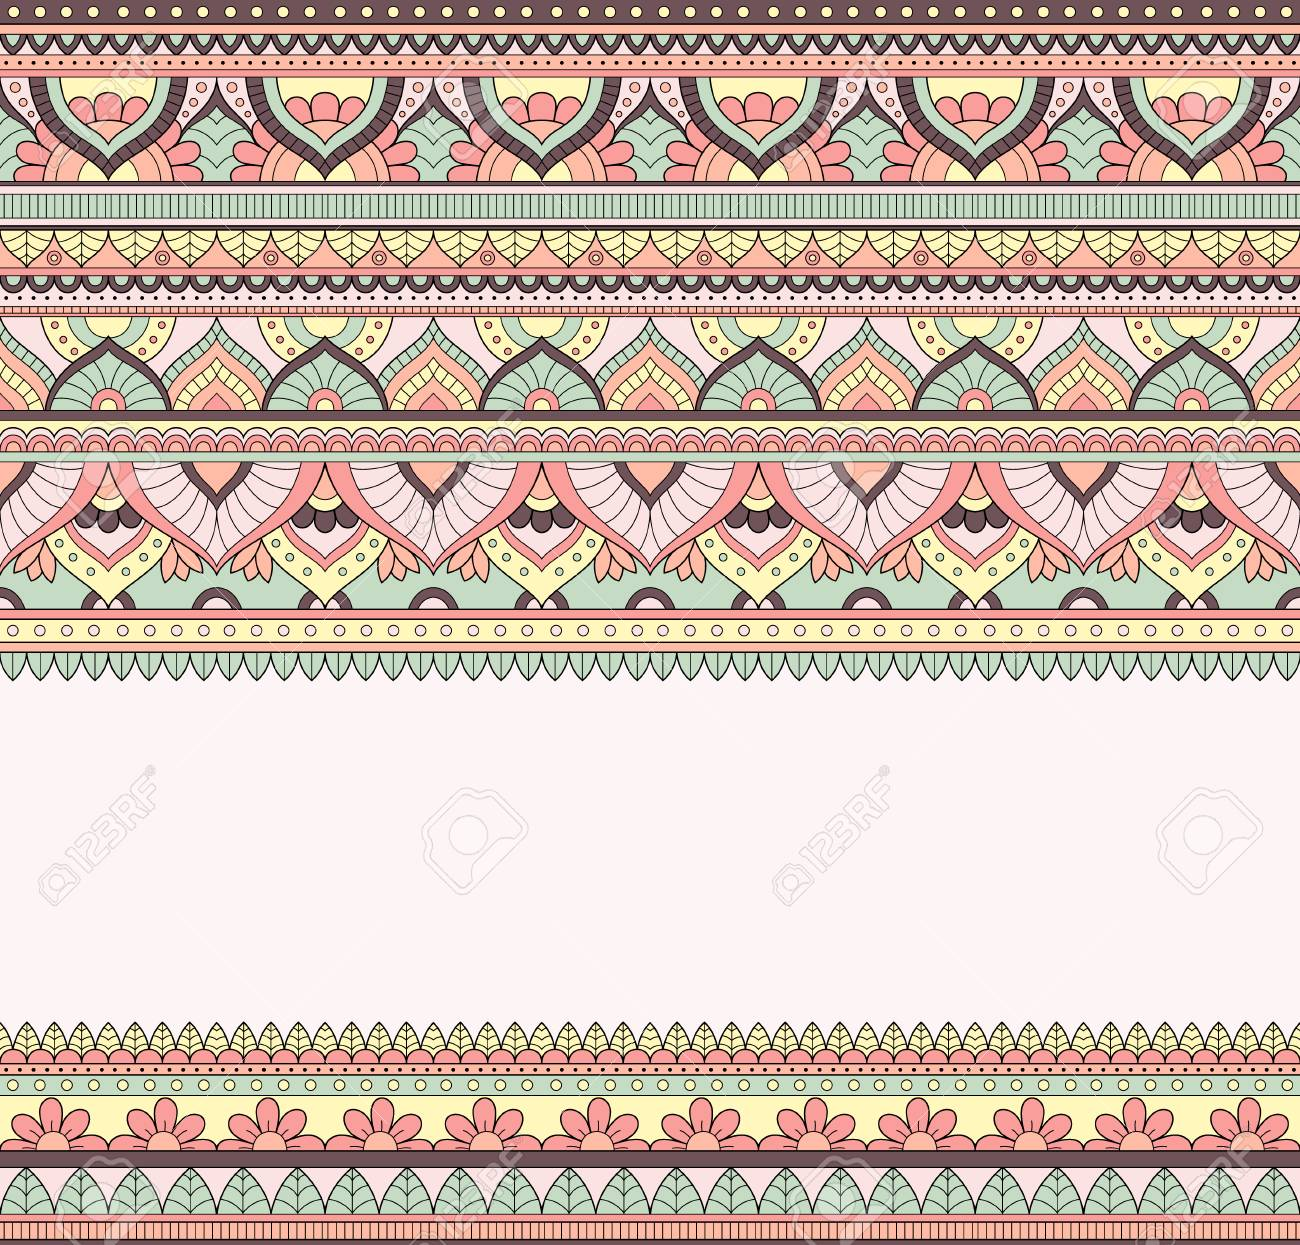 Seamless doodle illustration, zentangle pattern, wallpaper, background, texture. Indian Orment.